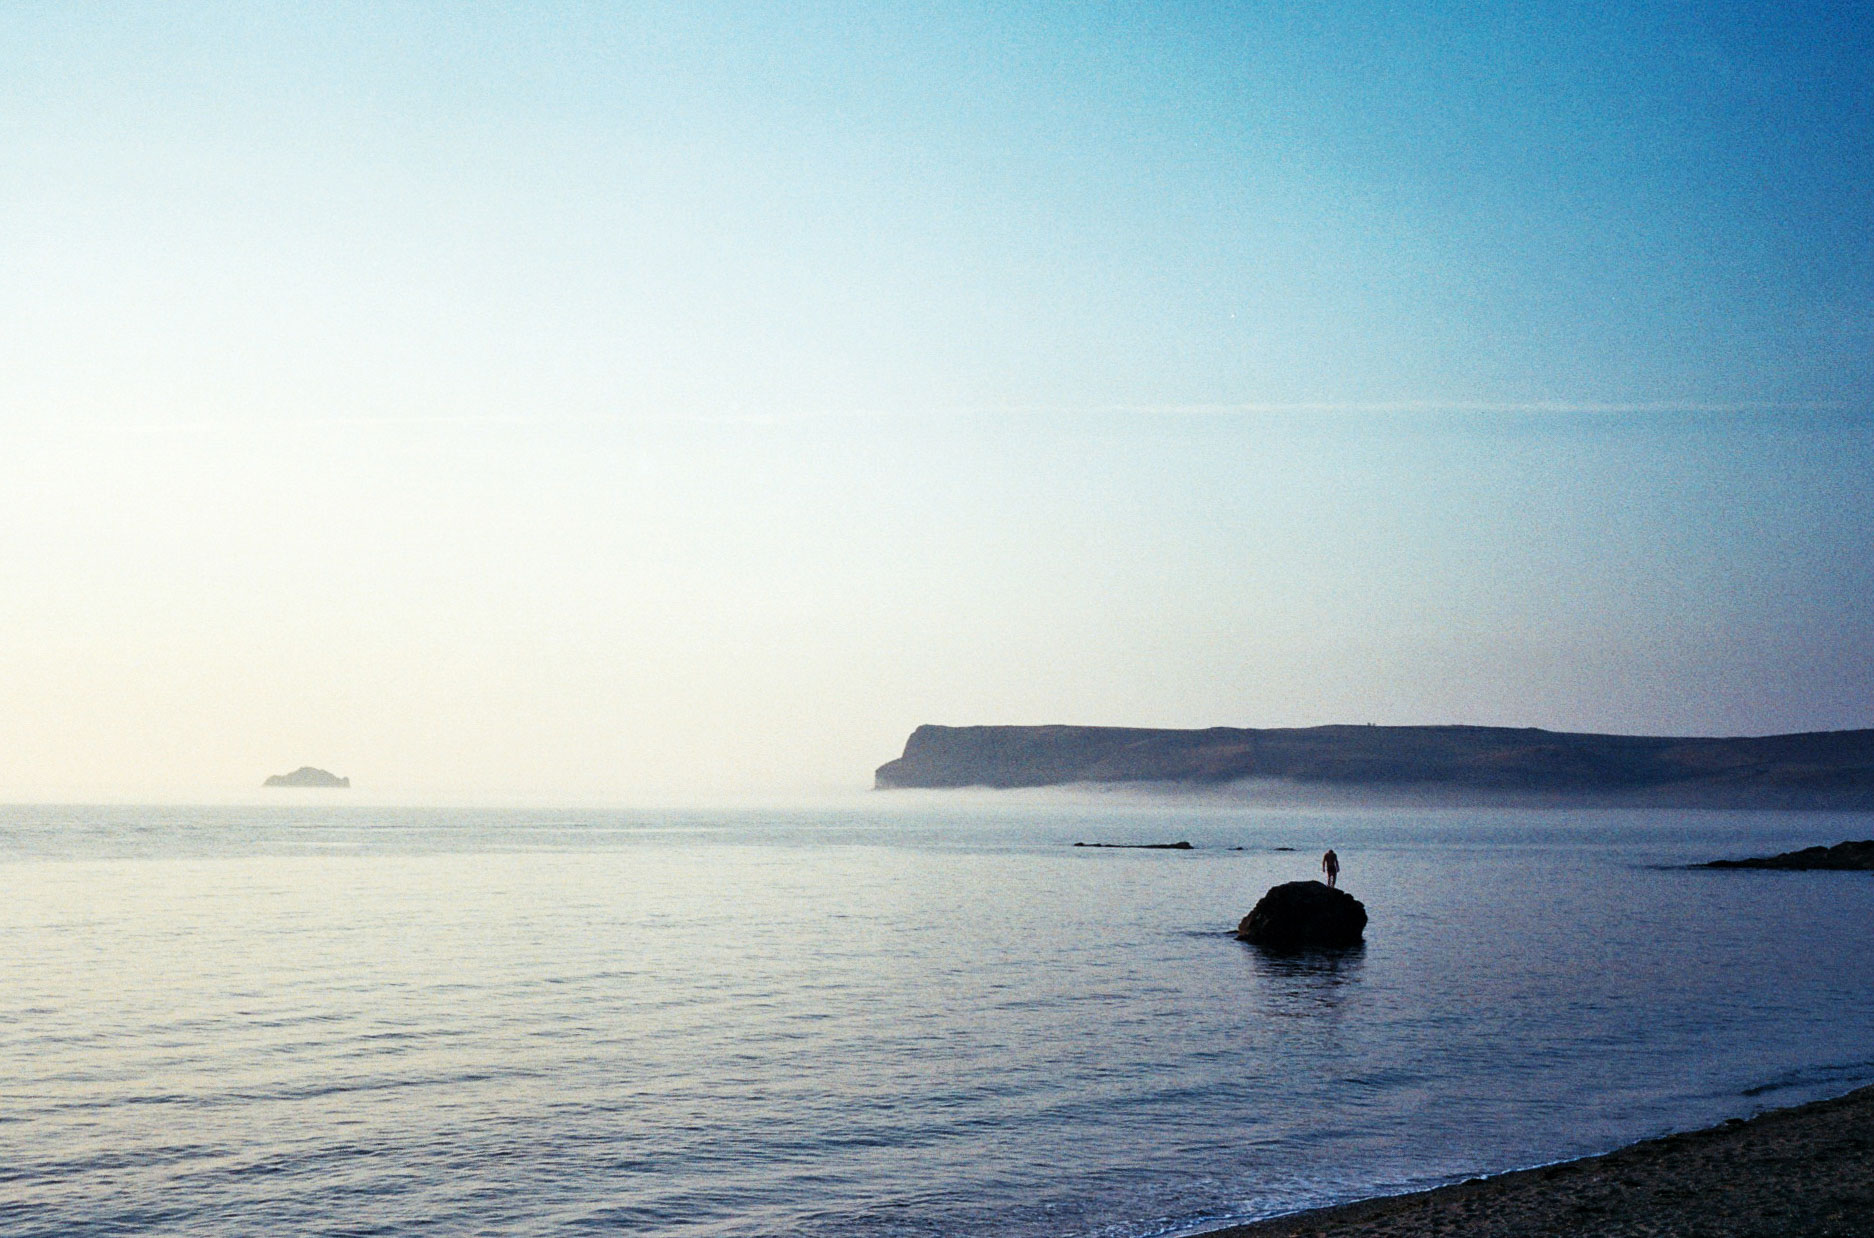 lone man stood on rock in sea